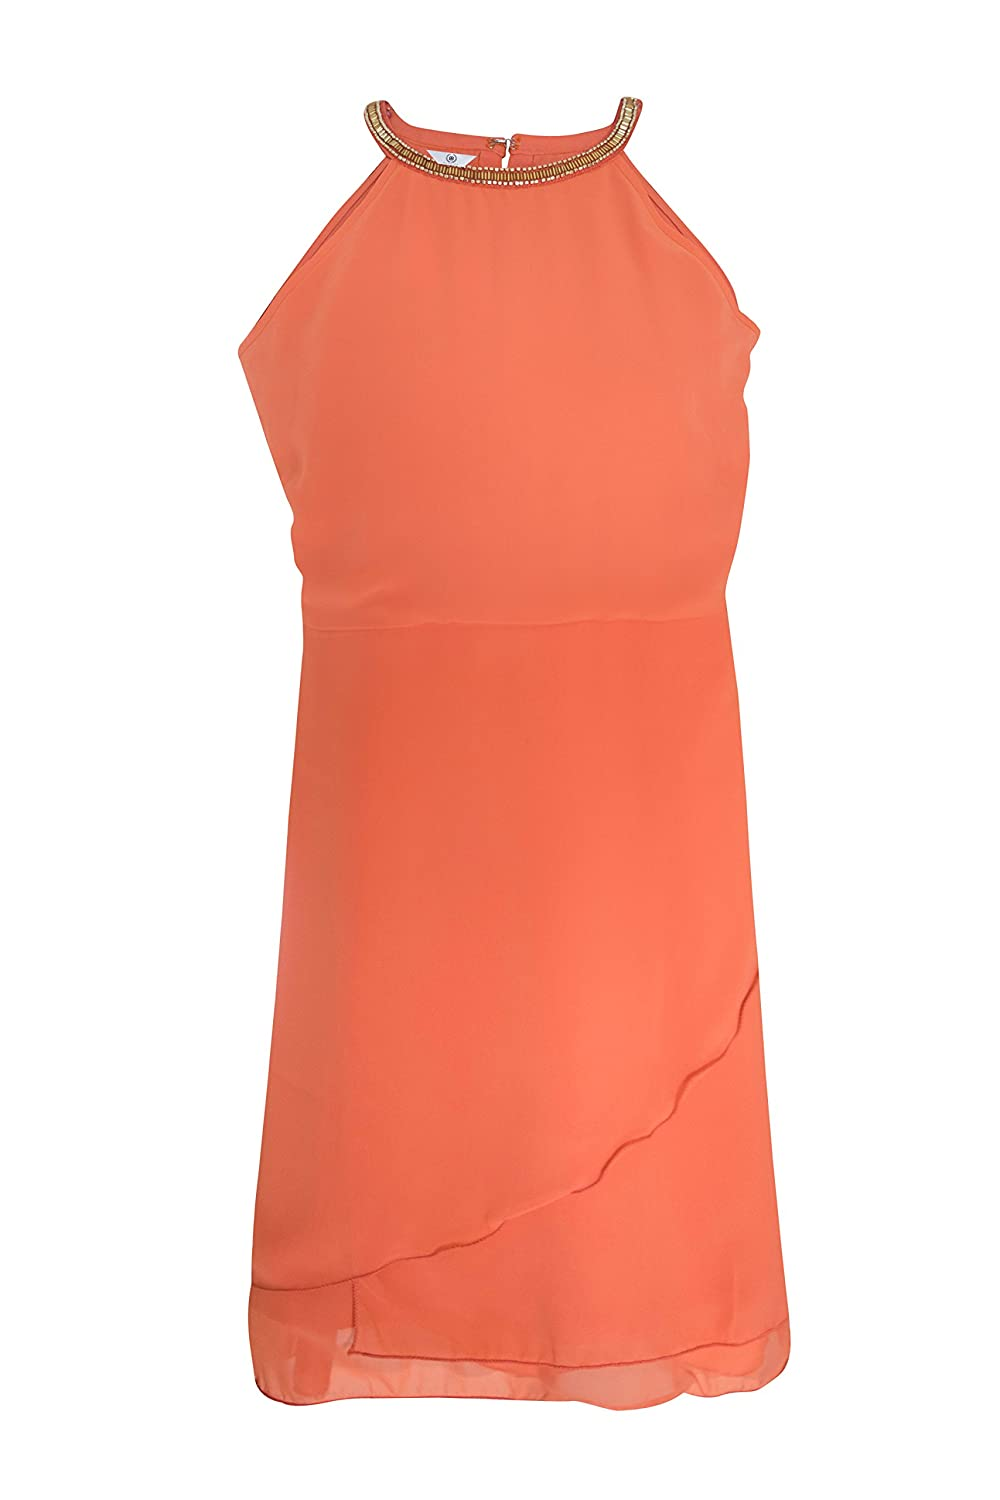 Bayside Woman's Peach Color Halter Neck And Overlapping Flared Short Dress